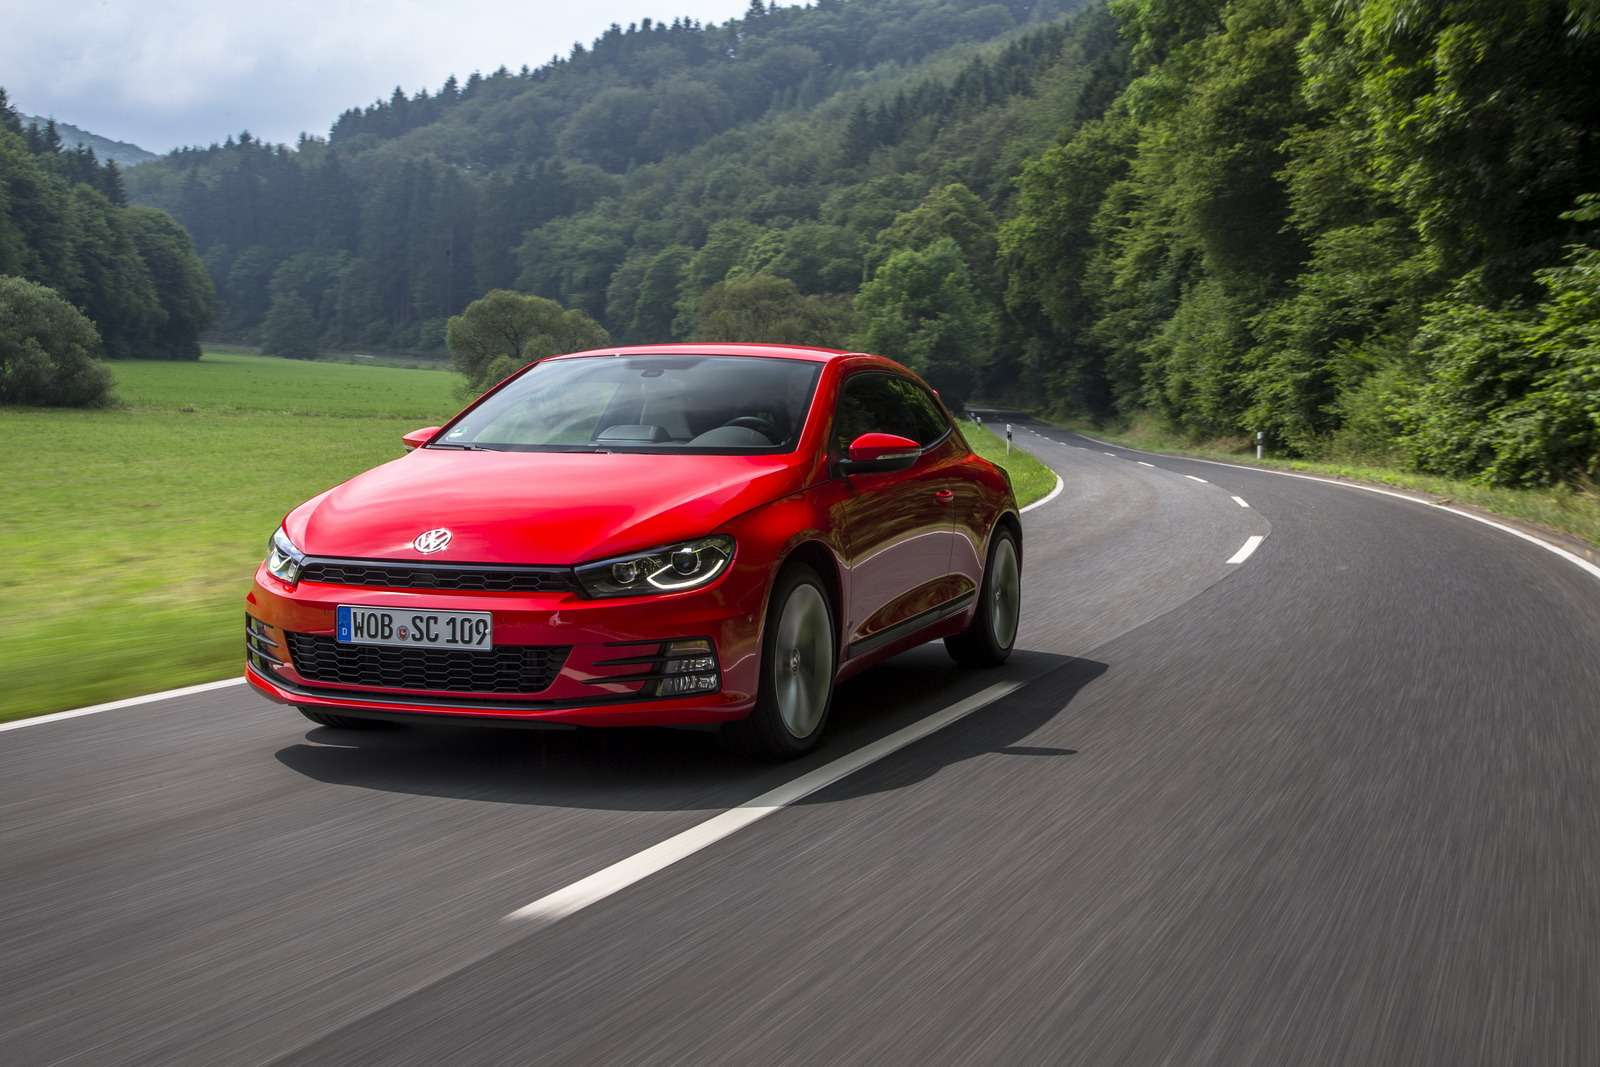 VOLKSWAGEN SCIROCCO2.0 TDI FLASH RED